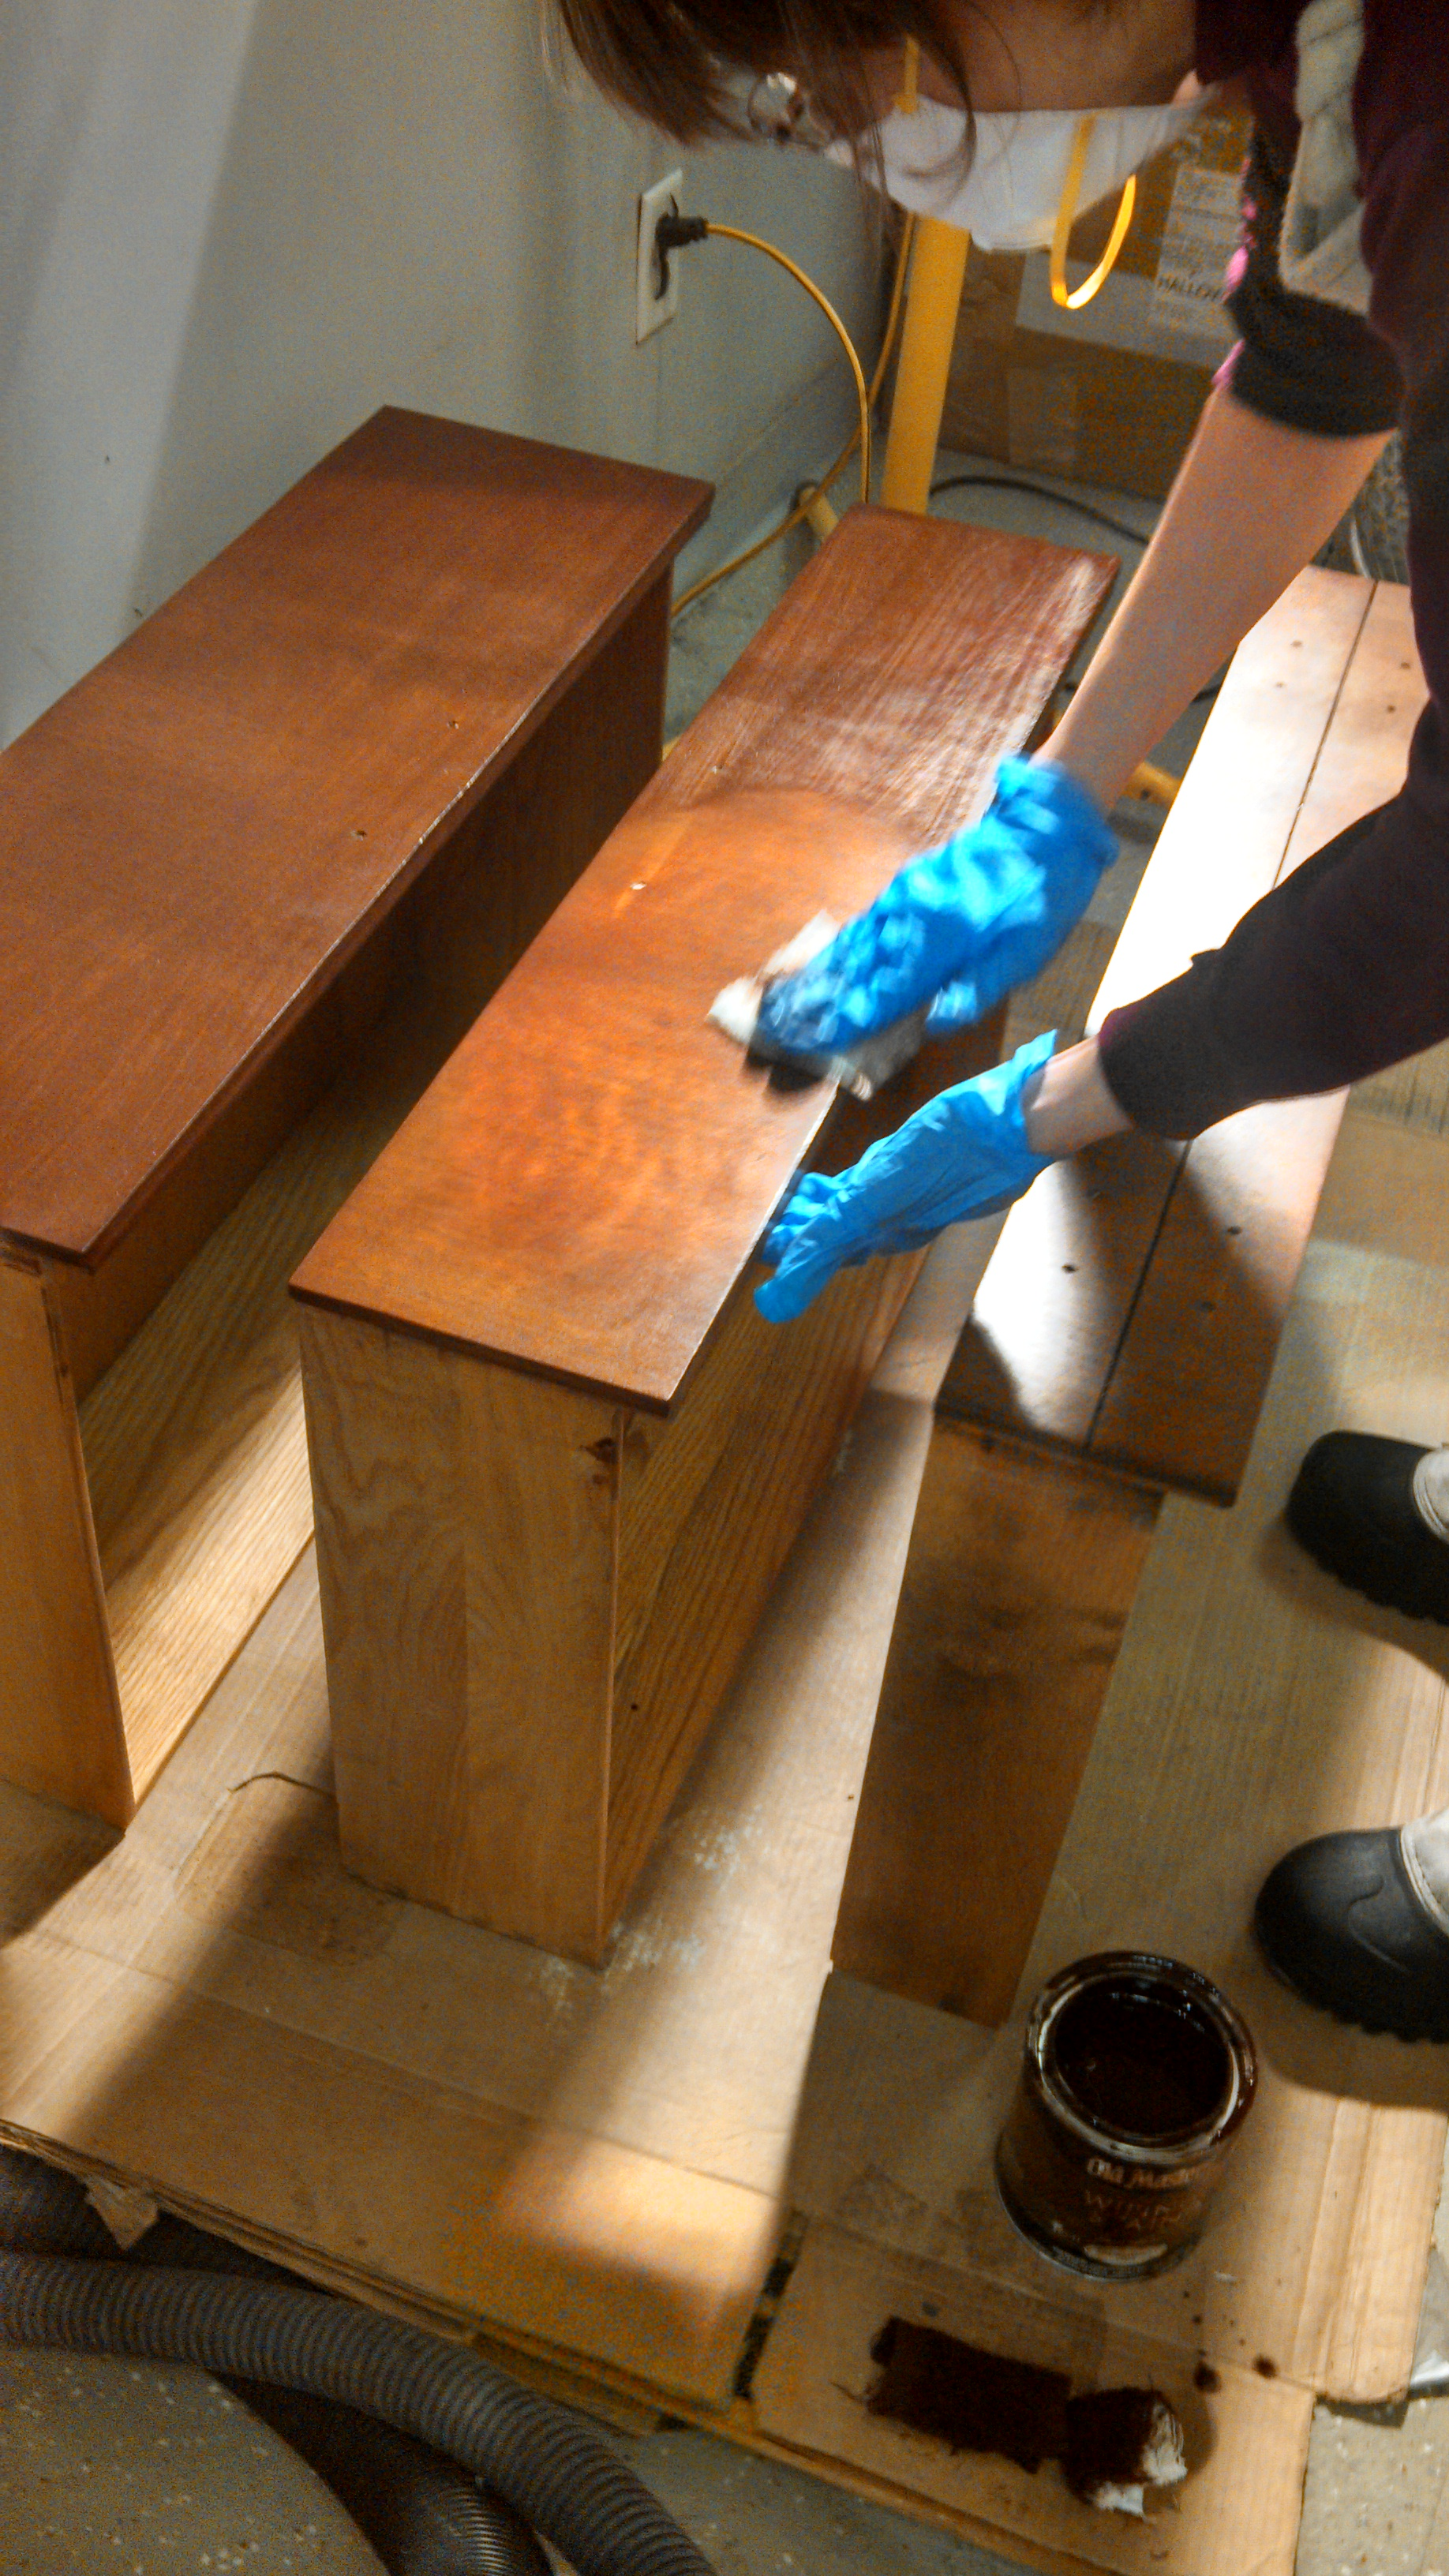 Pic 9 - After pre-treatment, apply stain. For this project we used Old Masters brand American Walnut Wiping Stain.